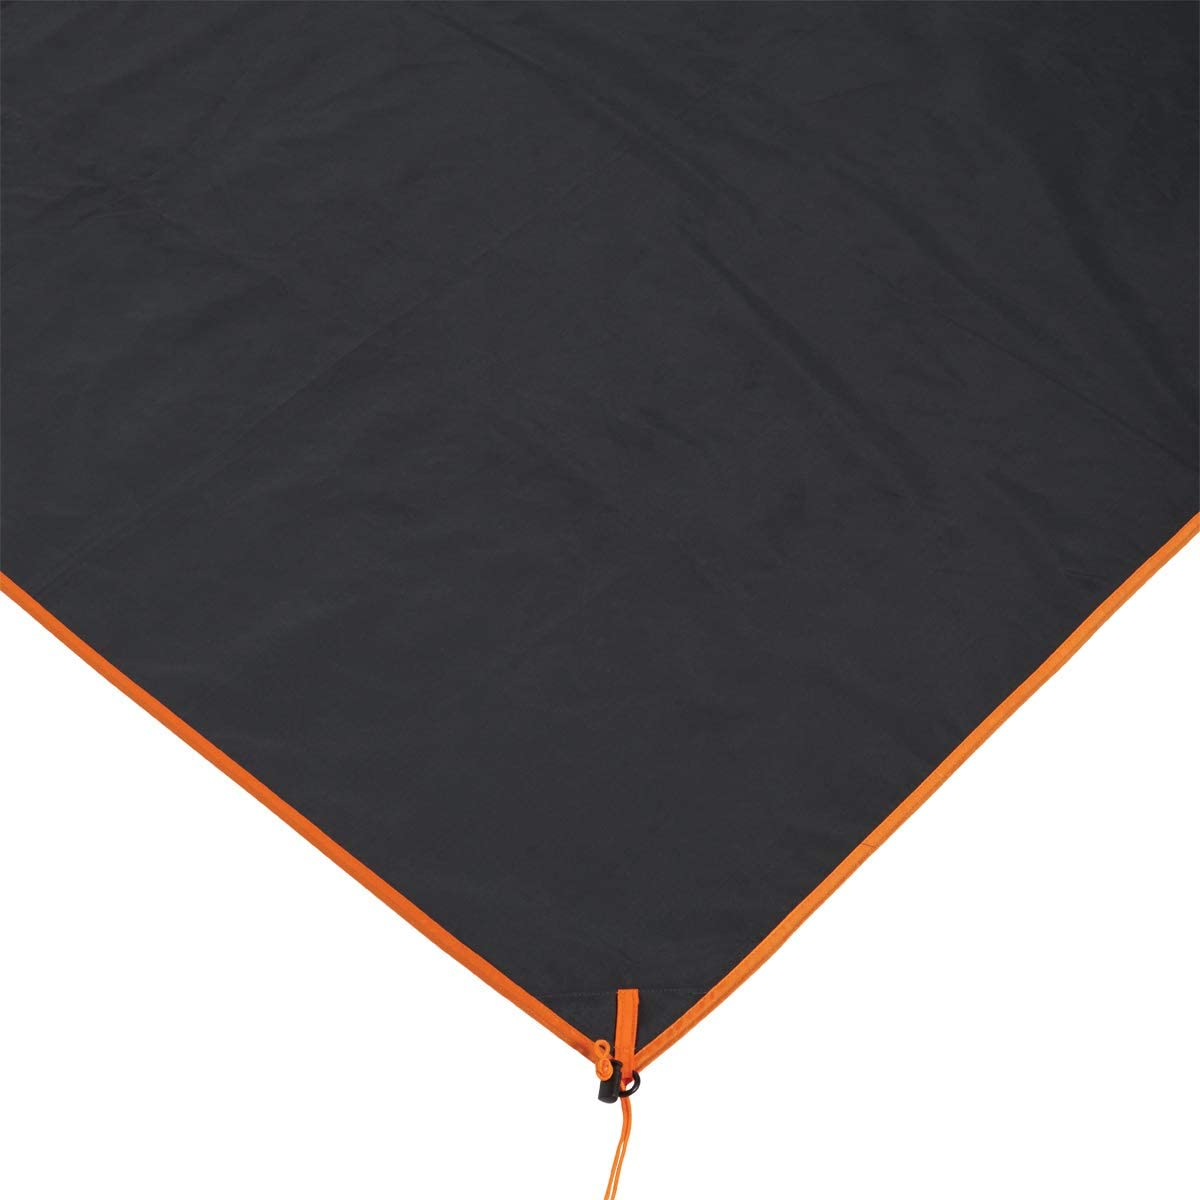 Eureka! Camp Comfort Add-On Tent Floor for Select Eureka! Tents